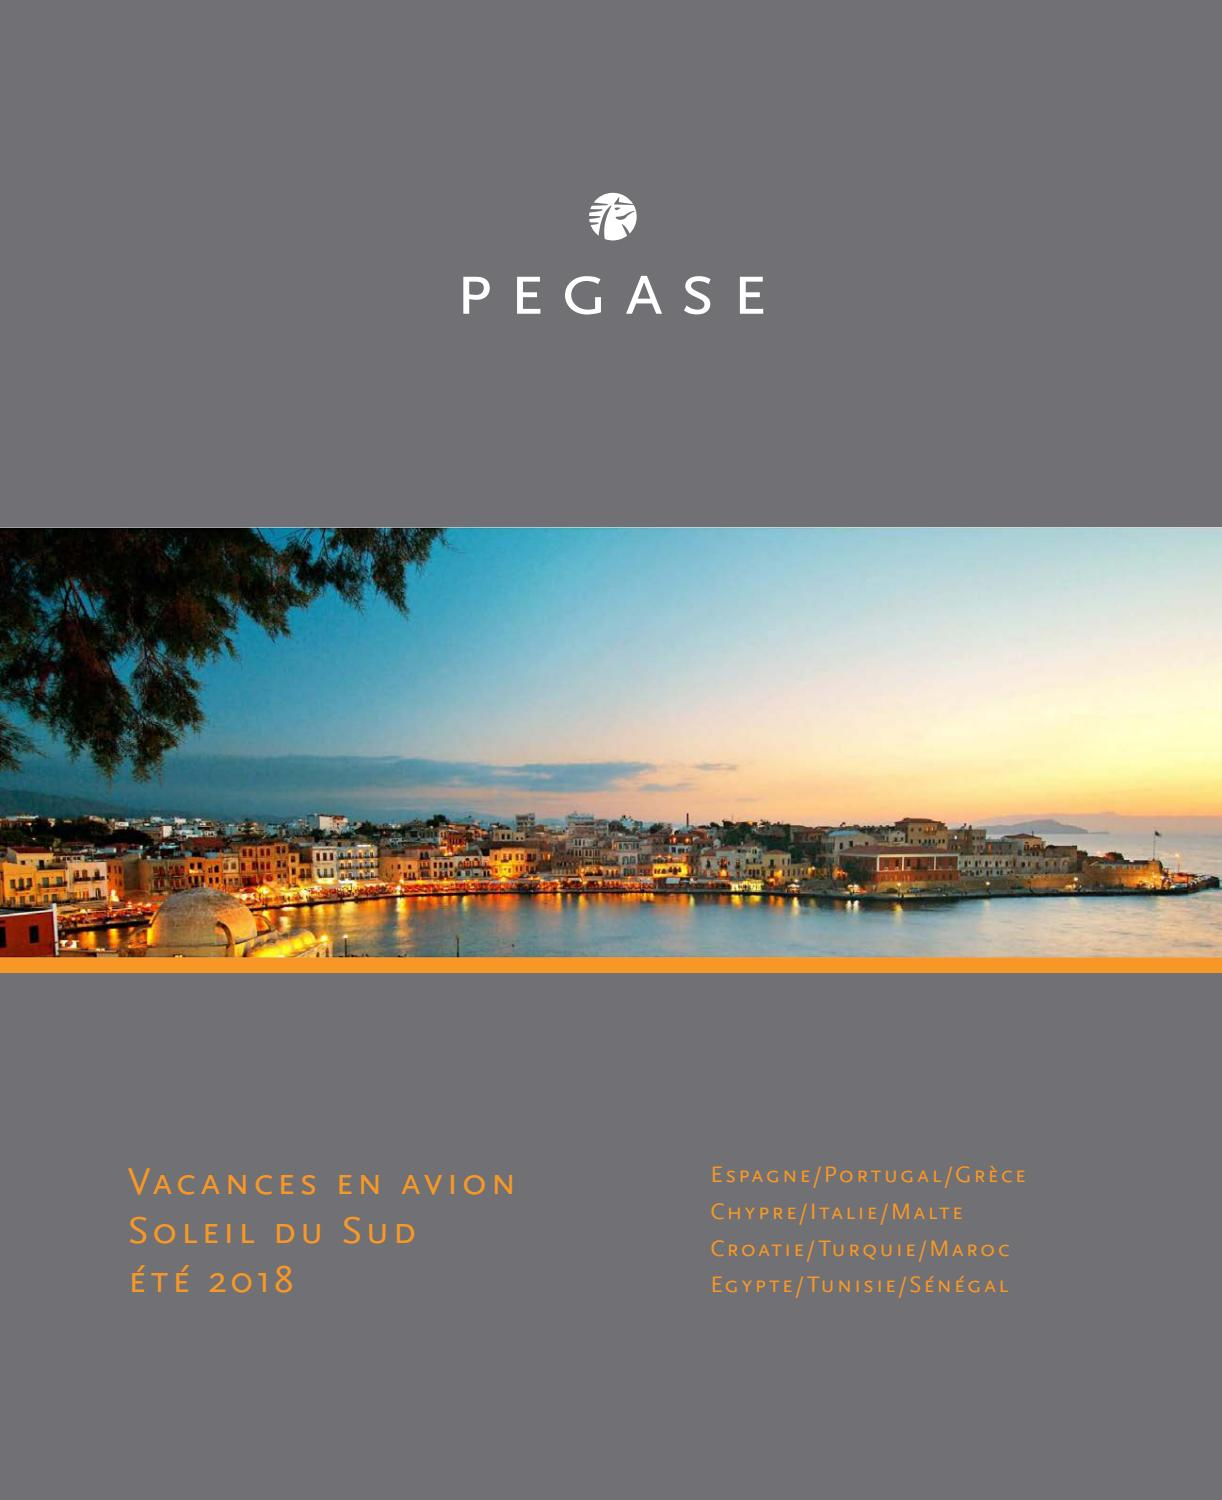 Pegase Vacances En Avion été 2018 By Thomas Cook Belgium Issuu